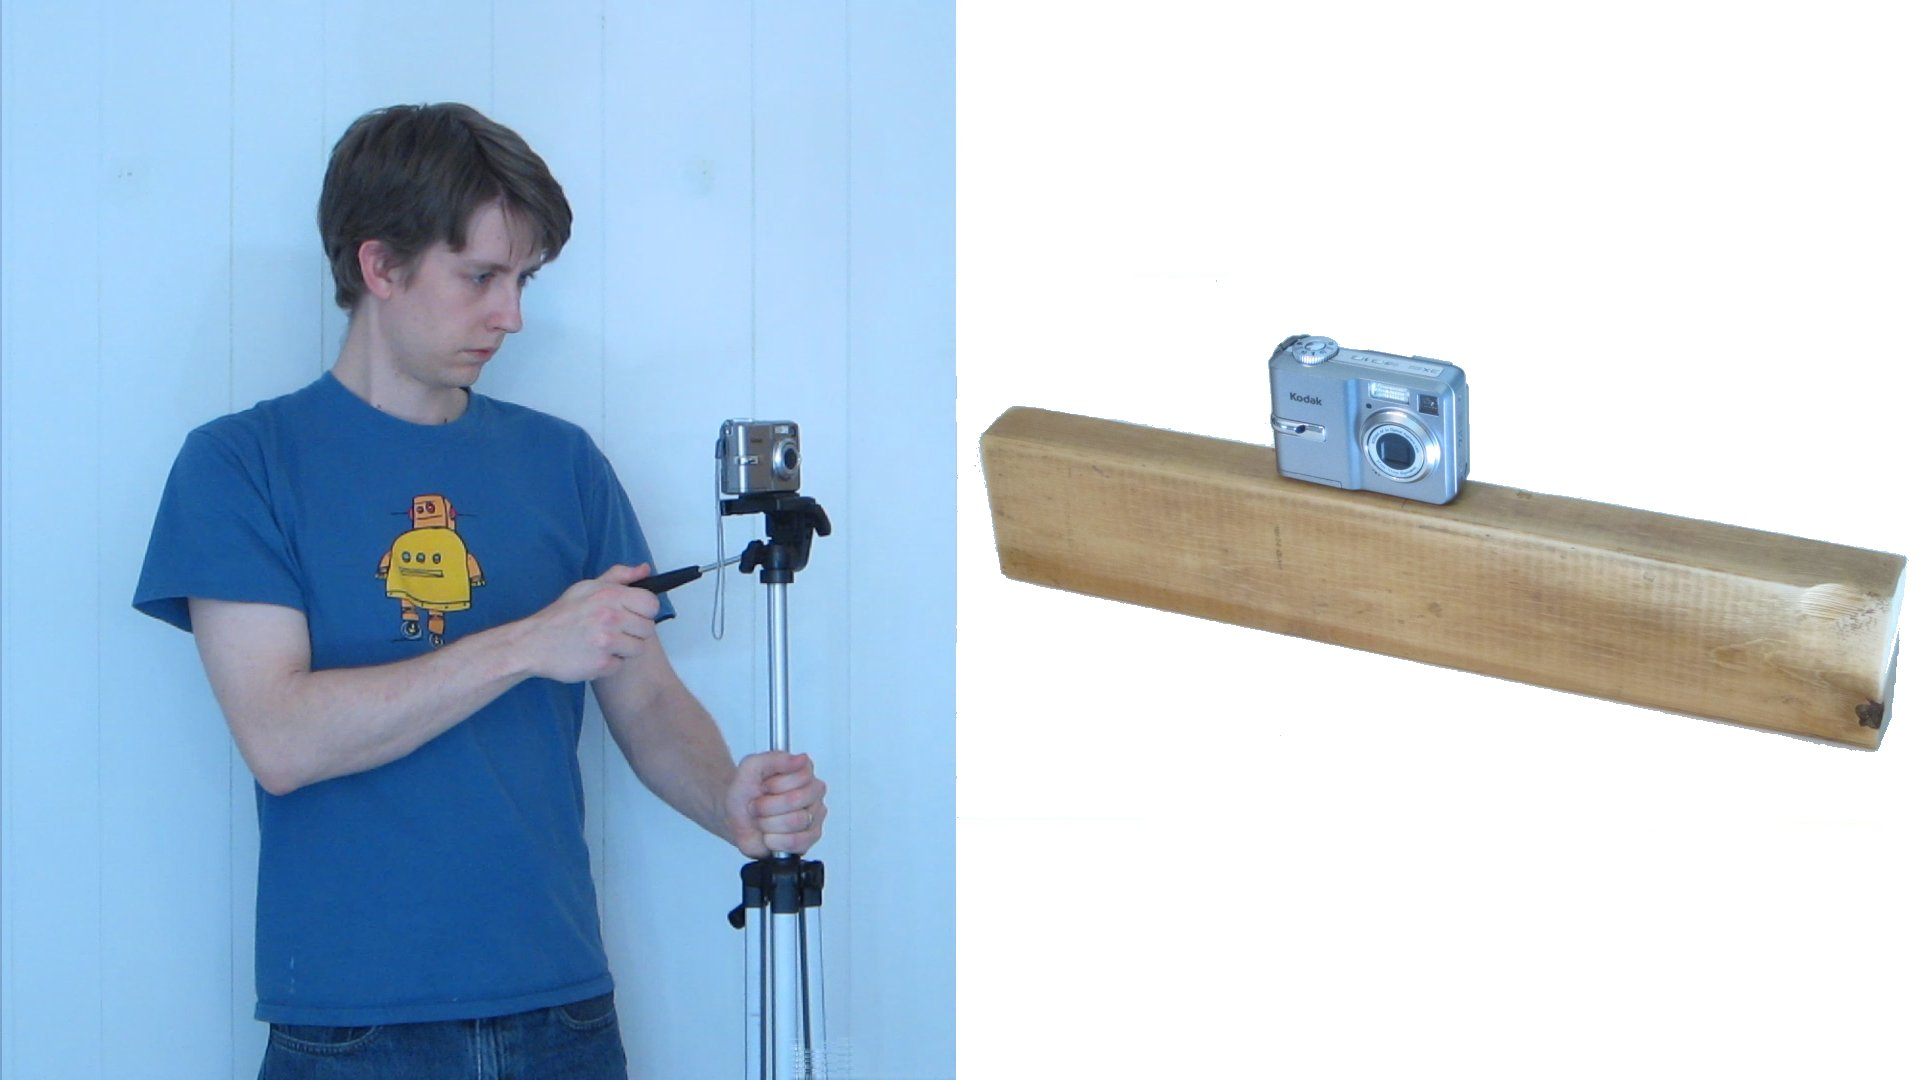 How To Make an Impromptu Camera Stabilizer